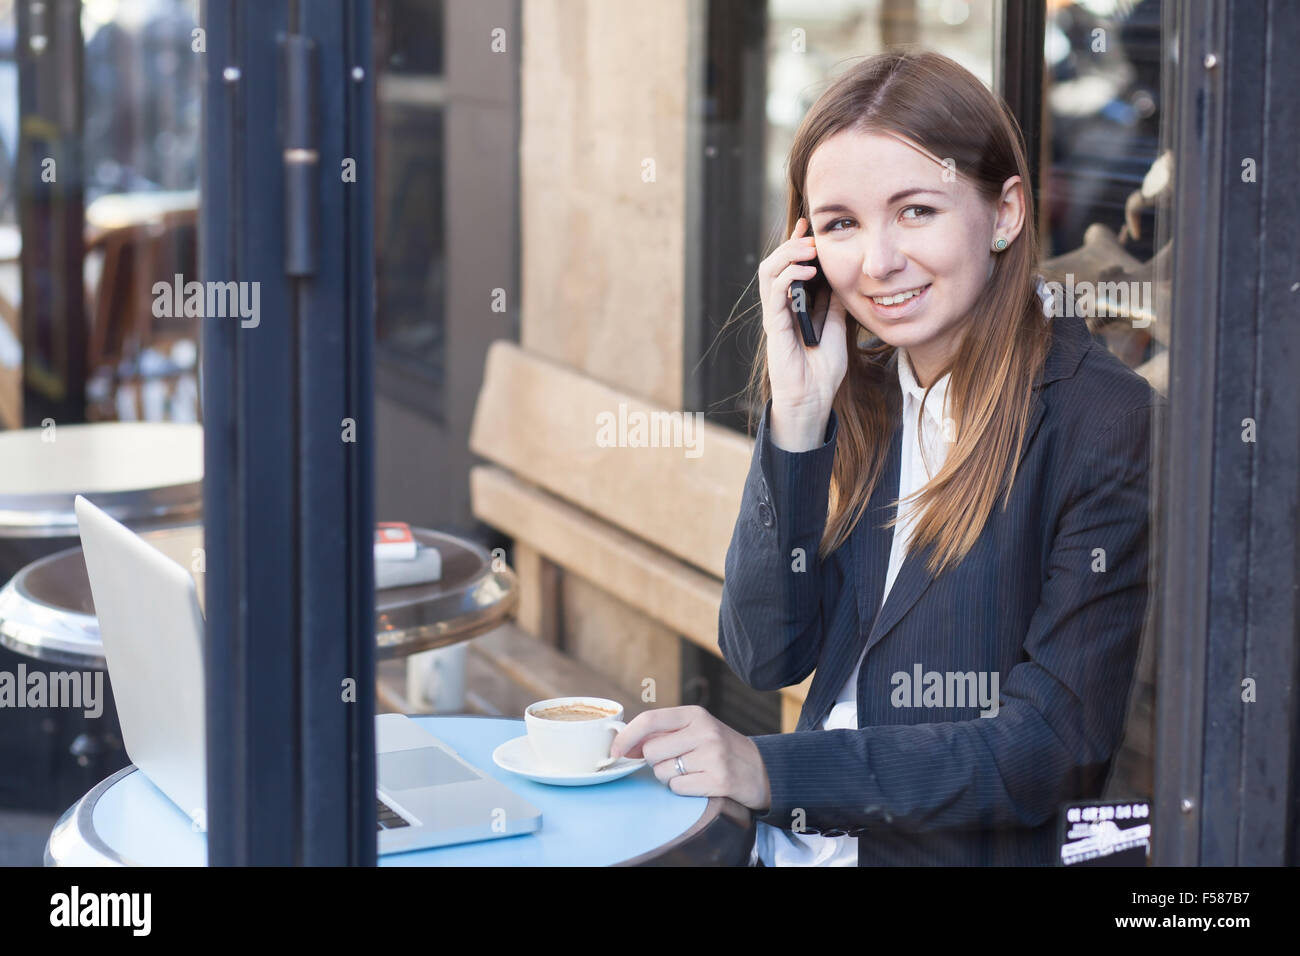 Smiling business woman talking by phone in cafe Photo Stock